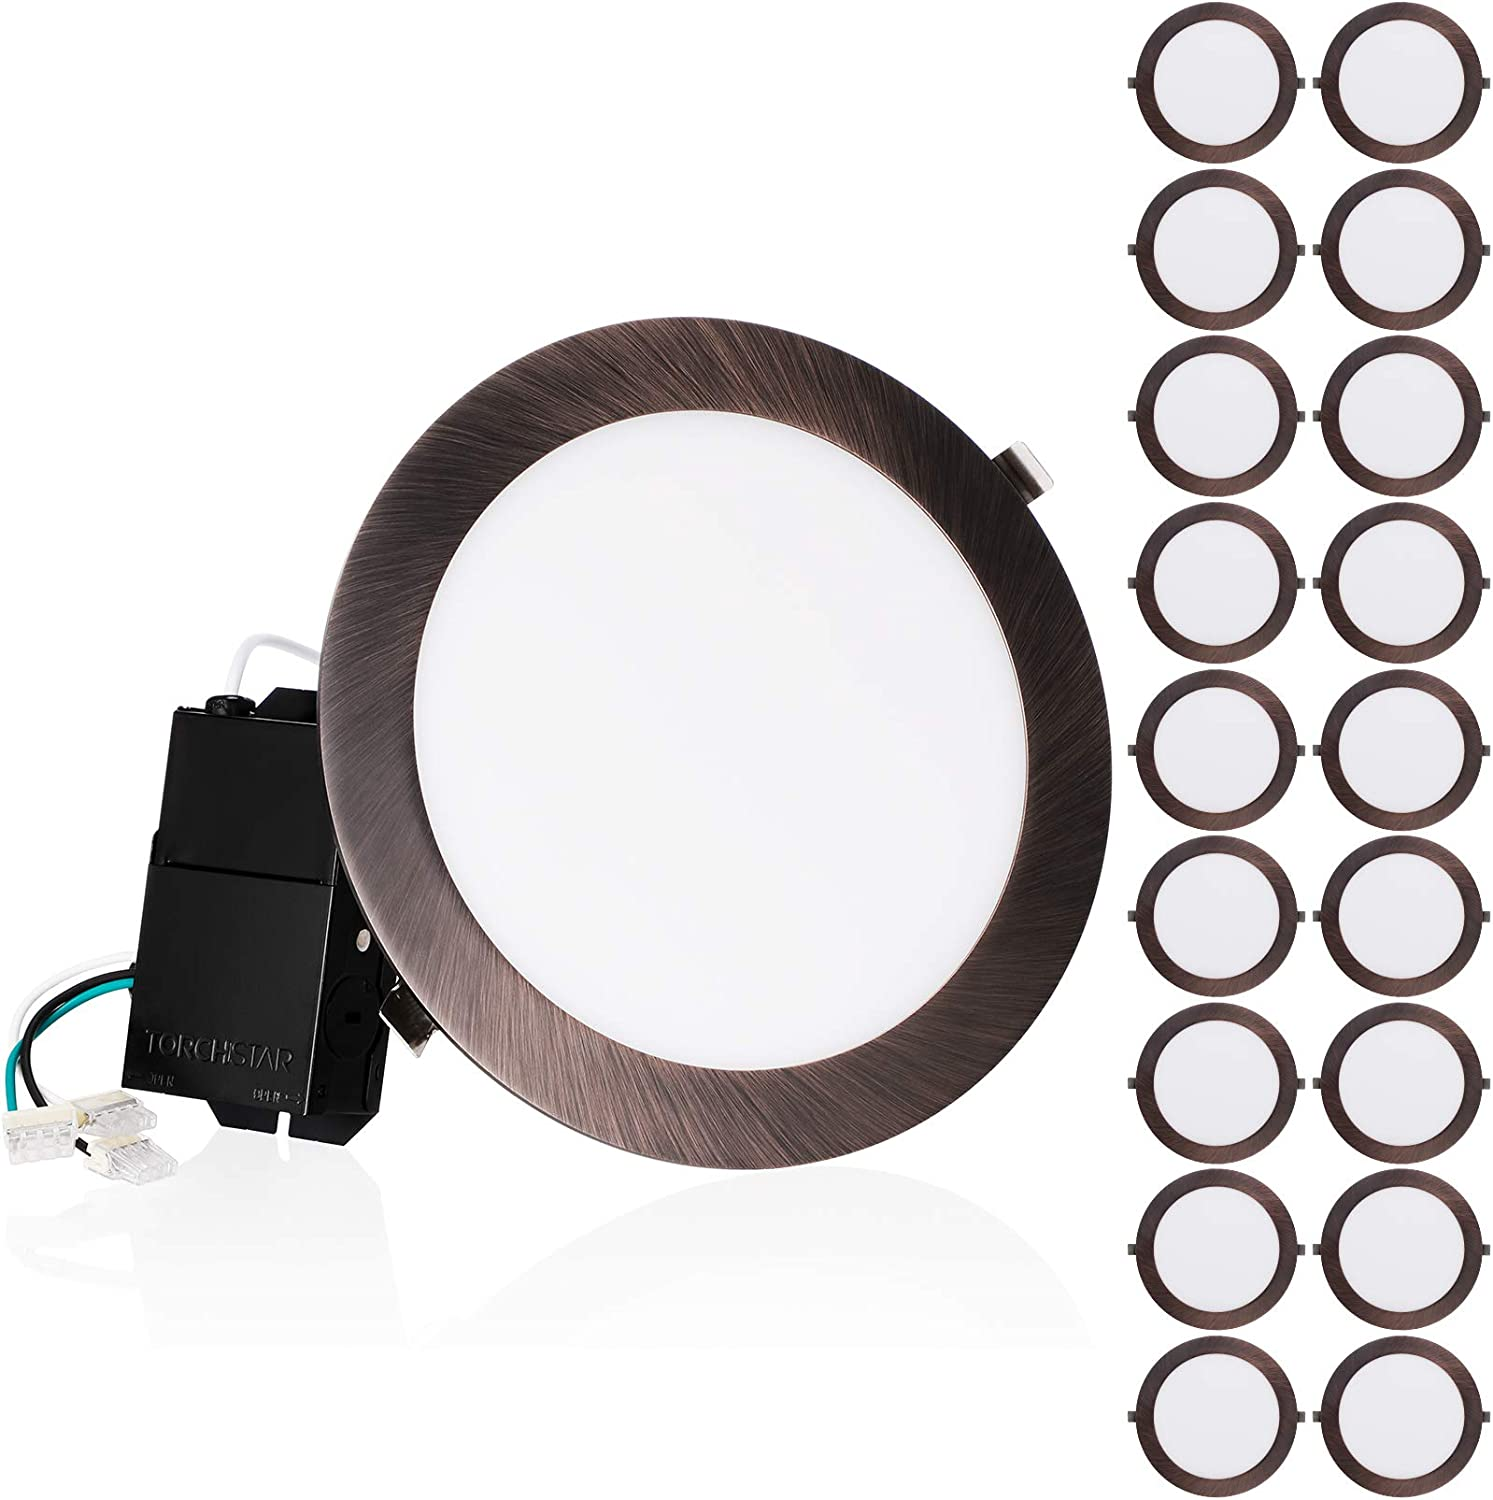 Wholesale TORCHSTAR New product type 18-Pack Premium 18W 8-Inch Ultra-Thin Lig Recessed LED